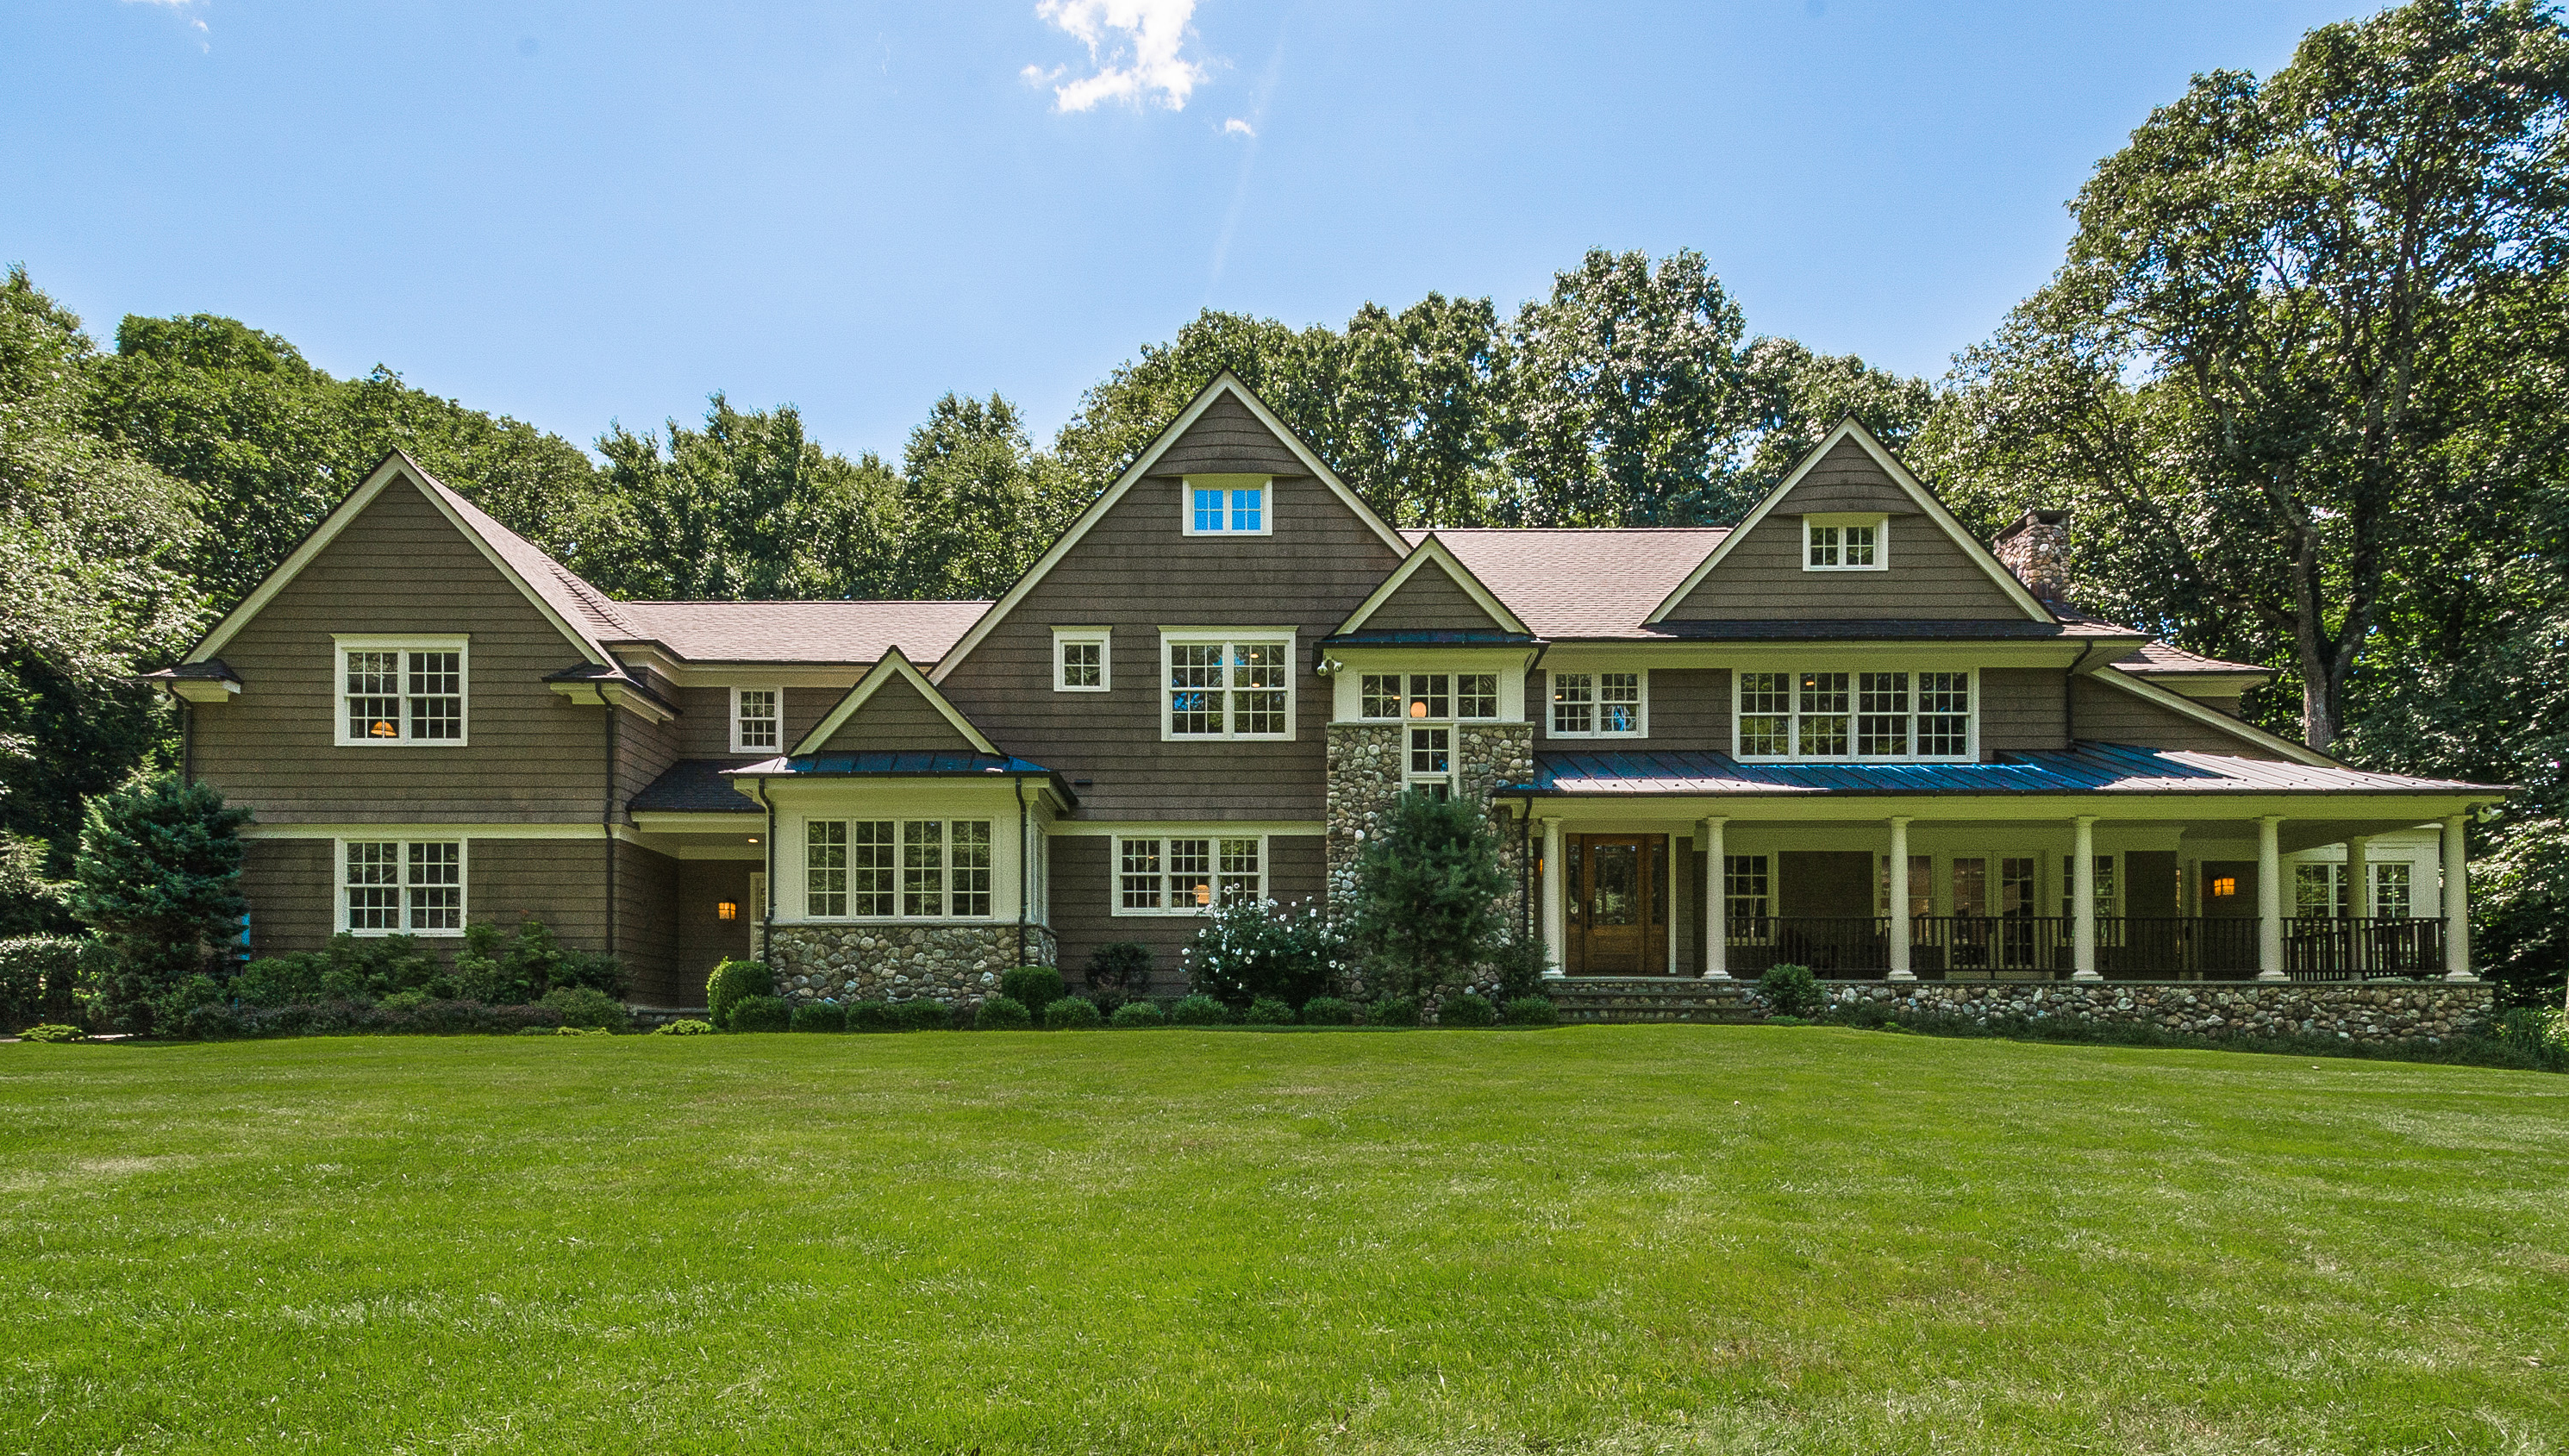 Property For Sale at Masterfully Crafted Stone & Shingle Colonial